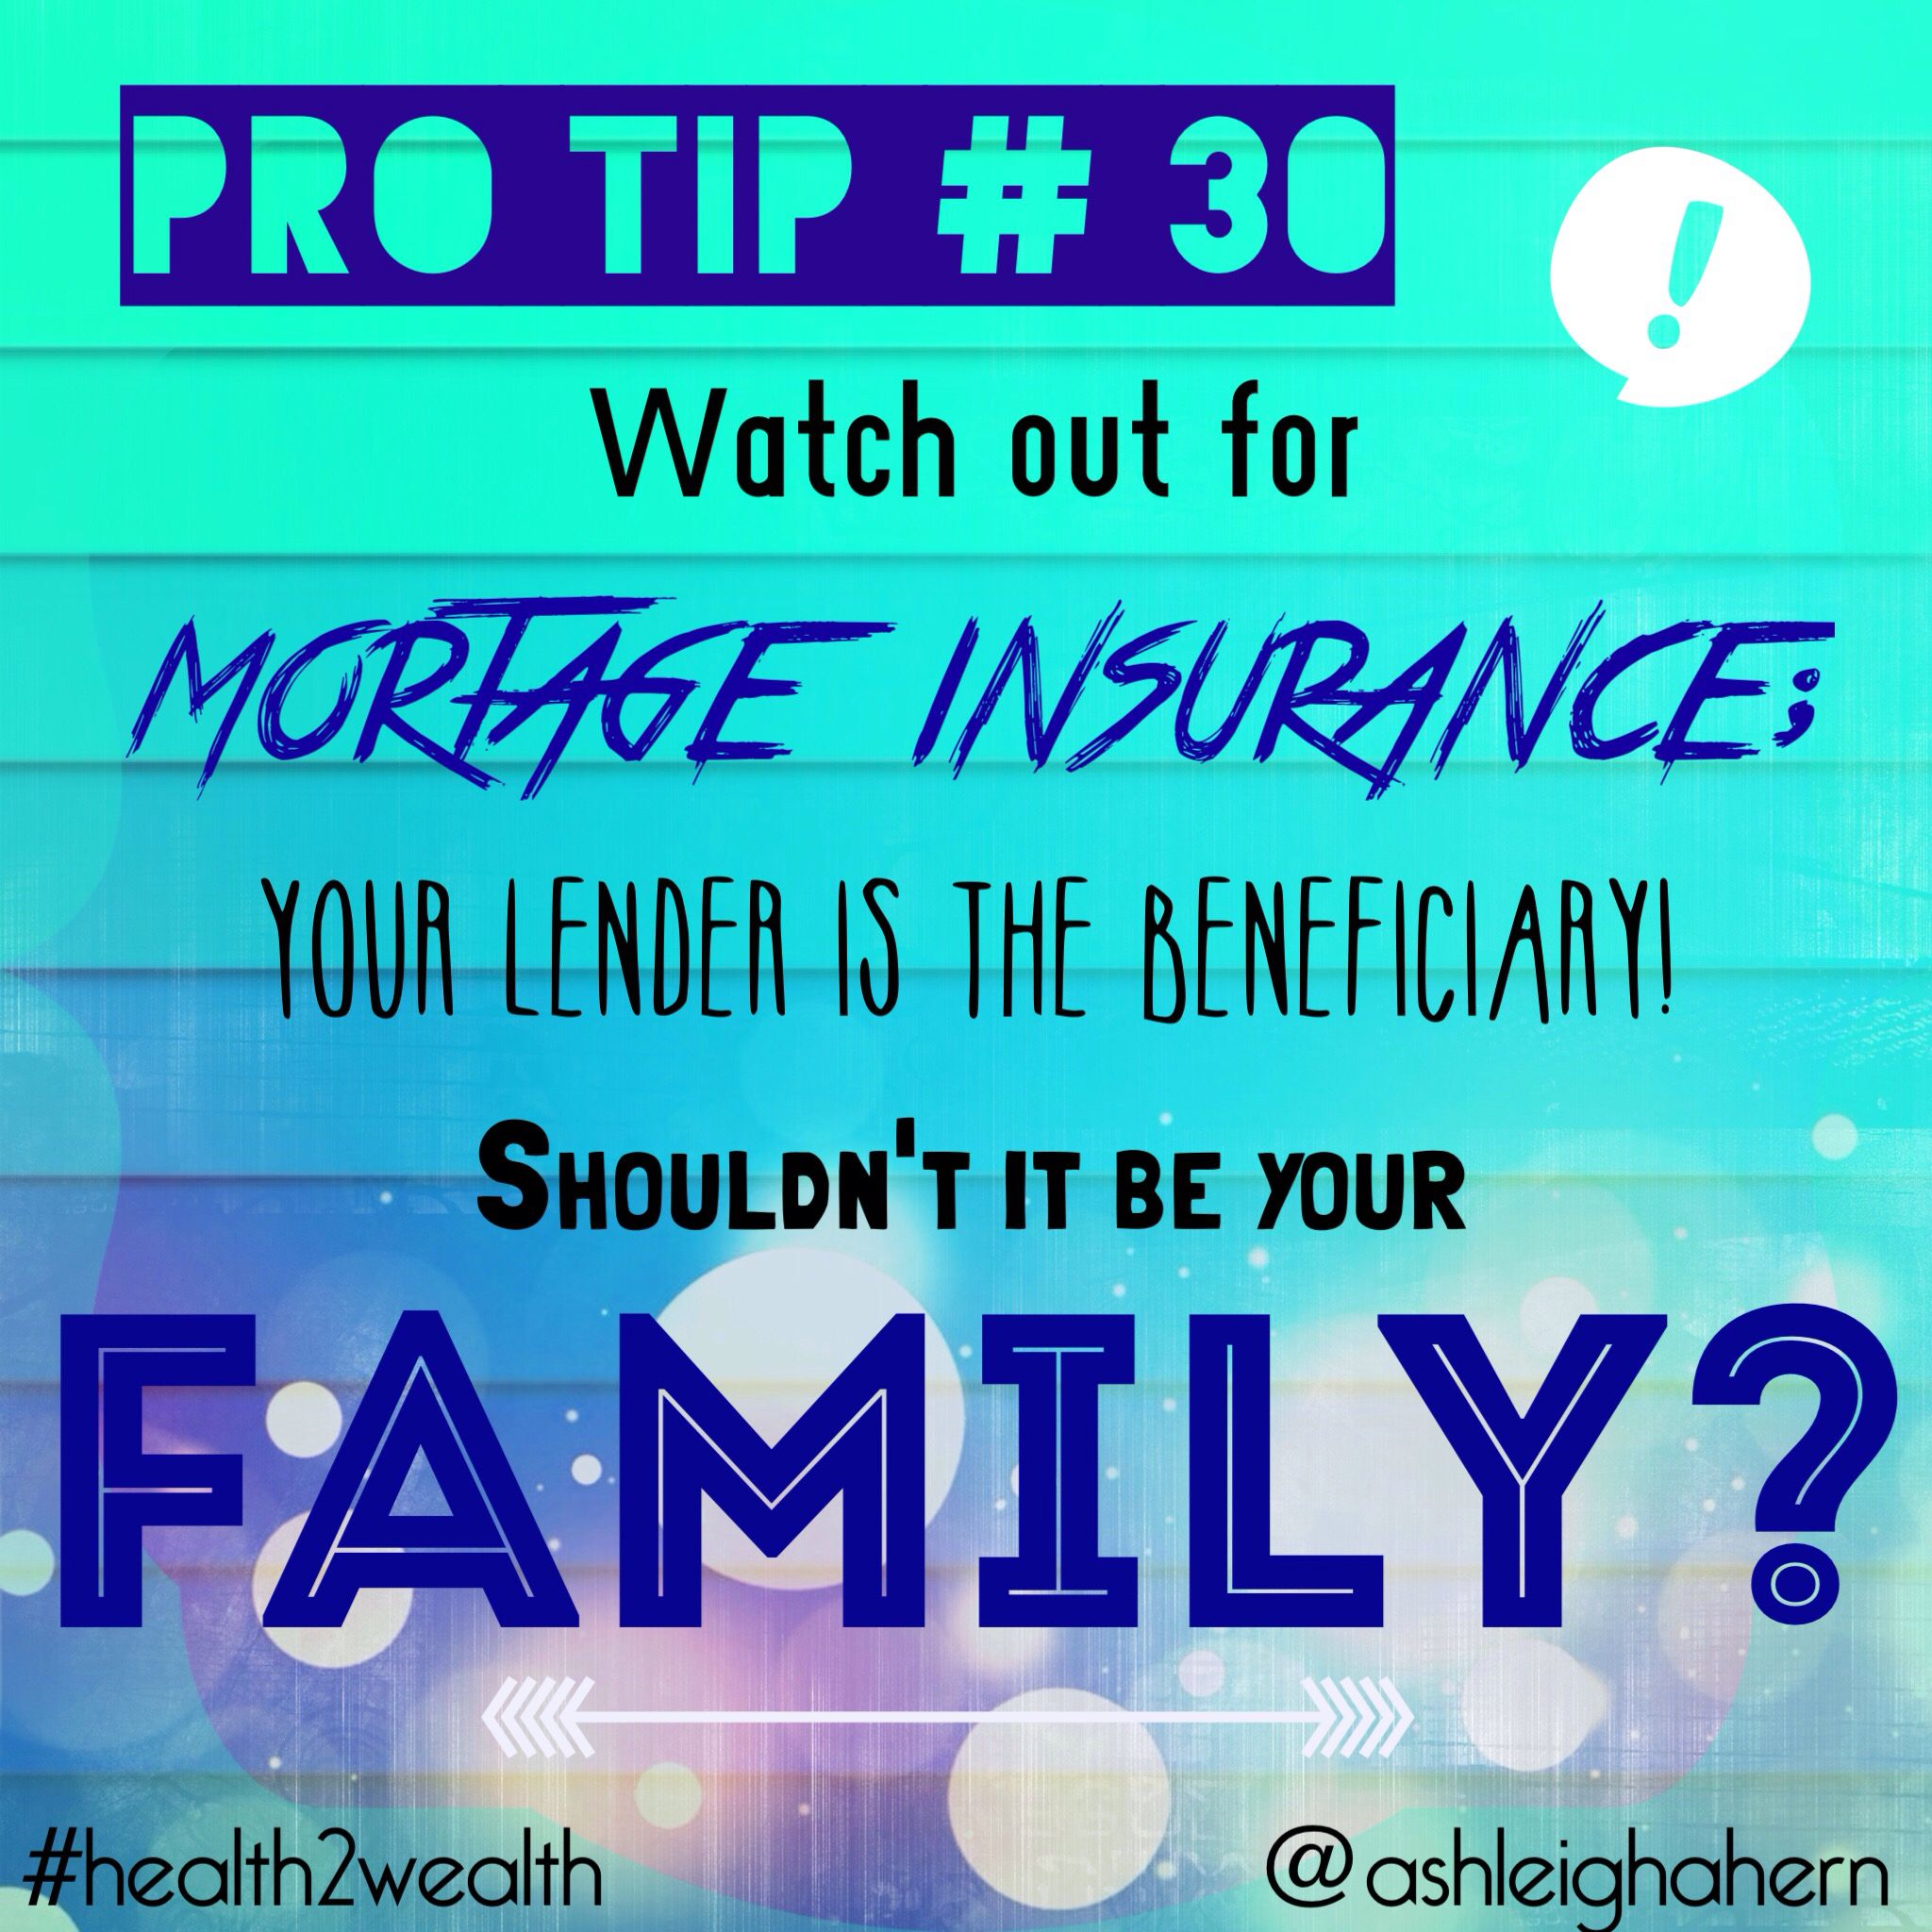 Mortgage Life Insurance Quote Pinsherry Franklin On Life Insurance  Pinterest  Wealth Quotes